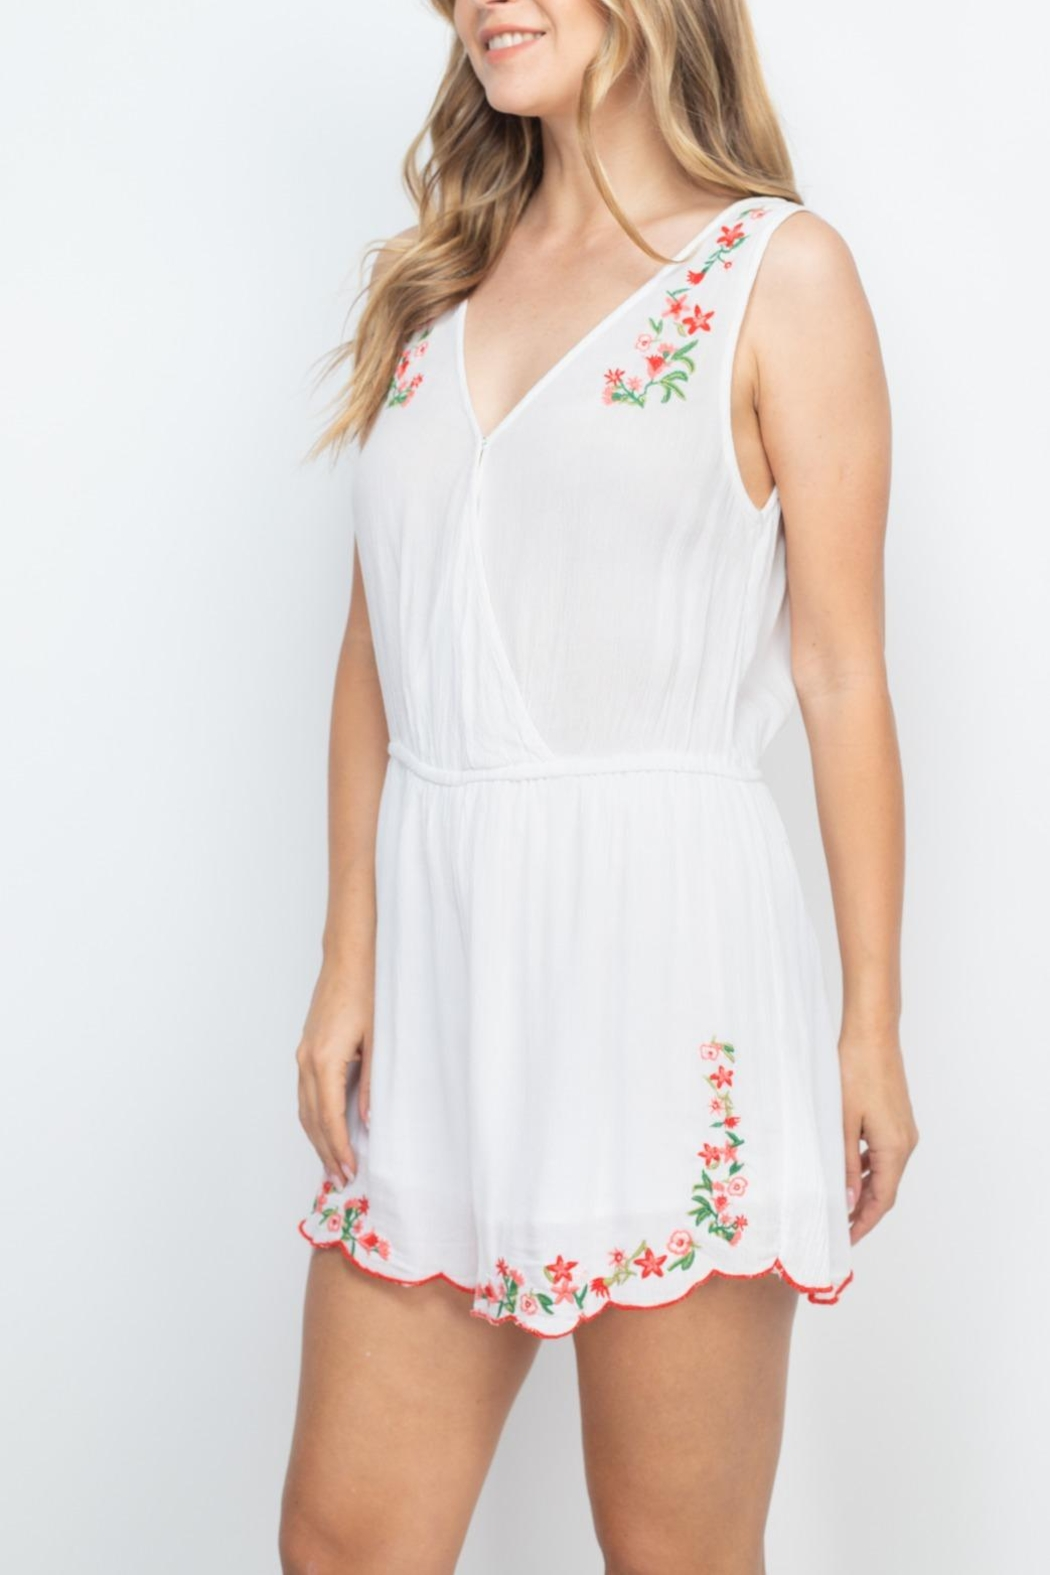 Riah Fashion White-With-Flowers-Embroidery-Romper - Back Cropped Image